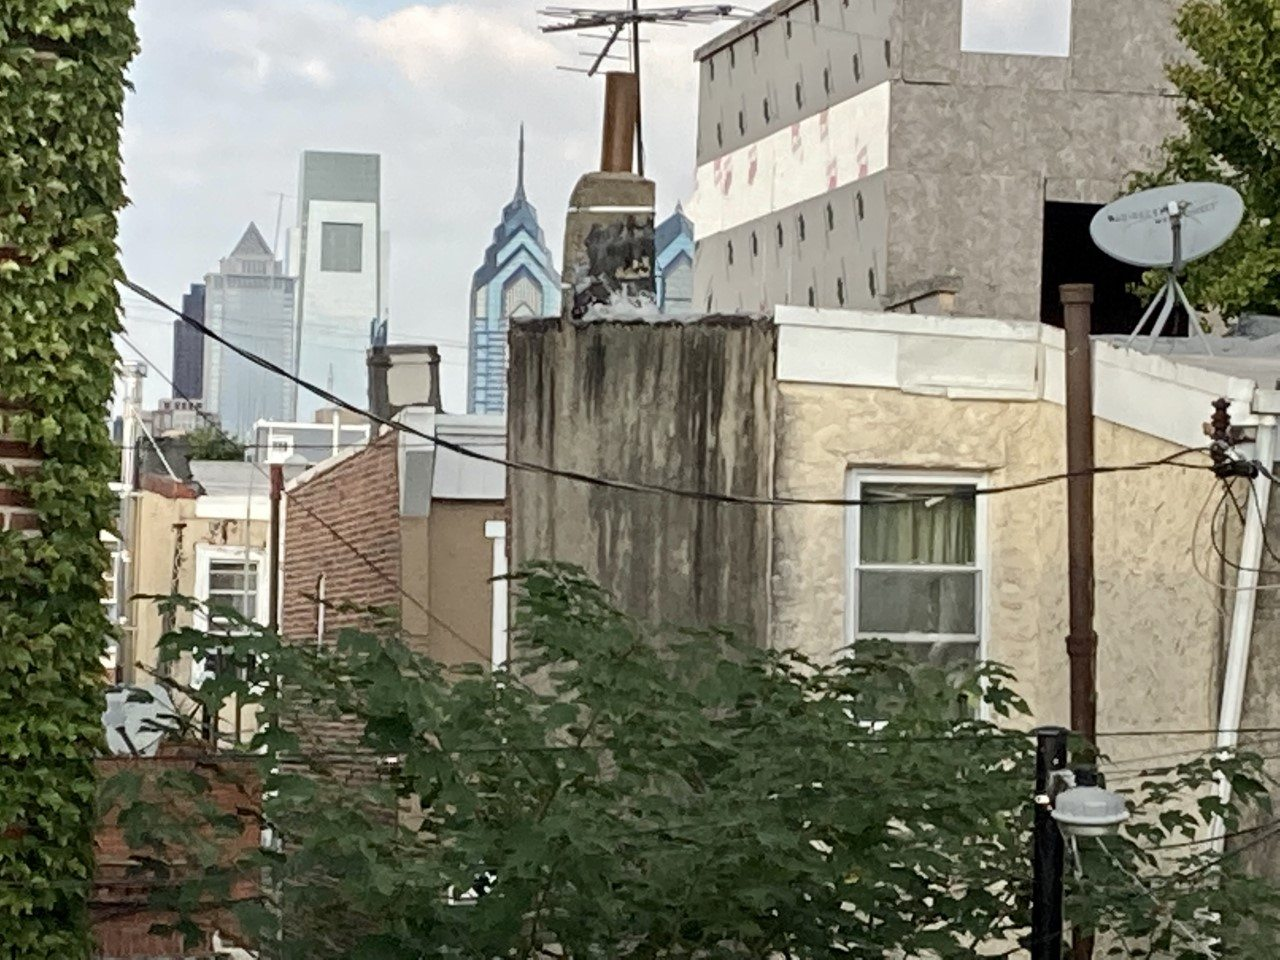 a view of the philadelphia skyline from the tent